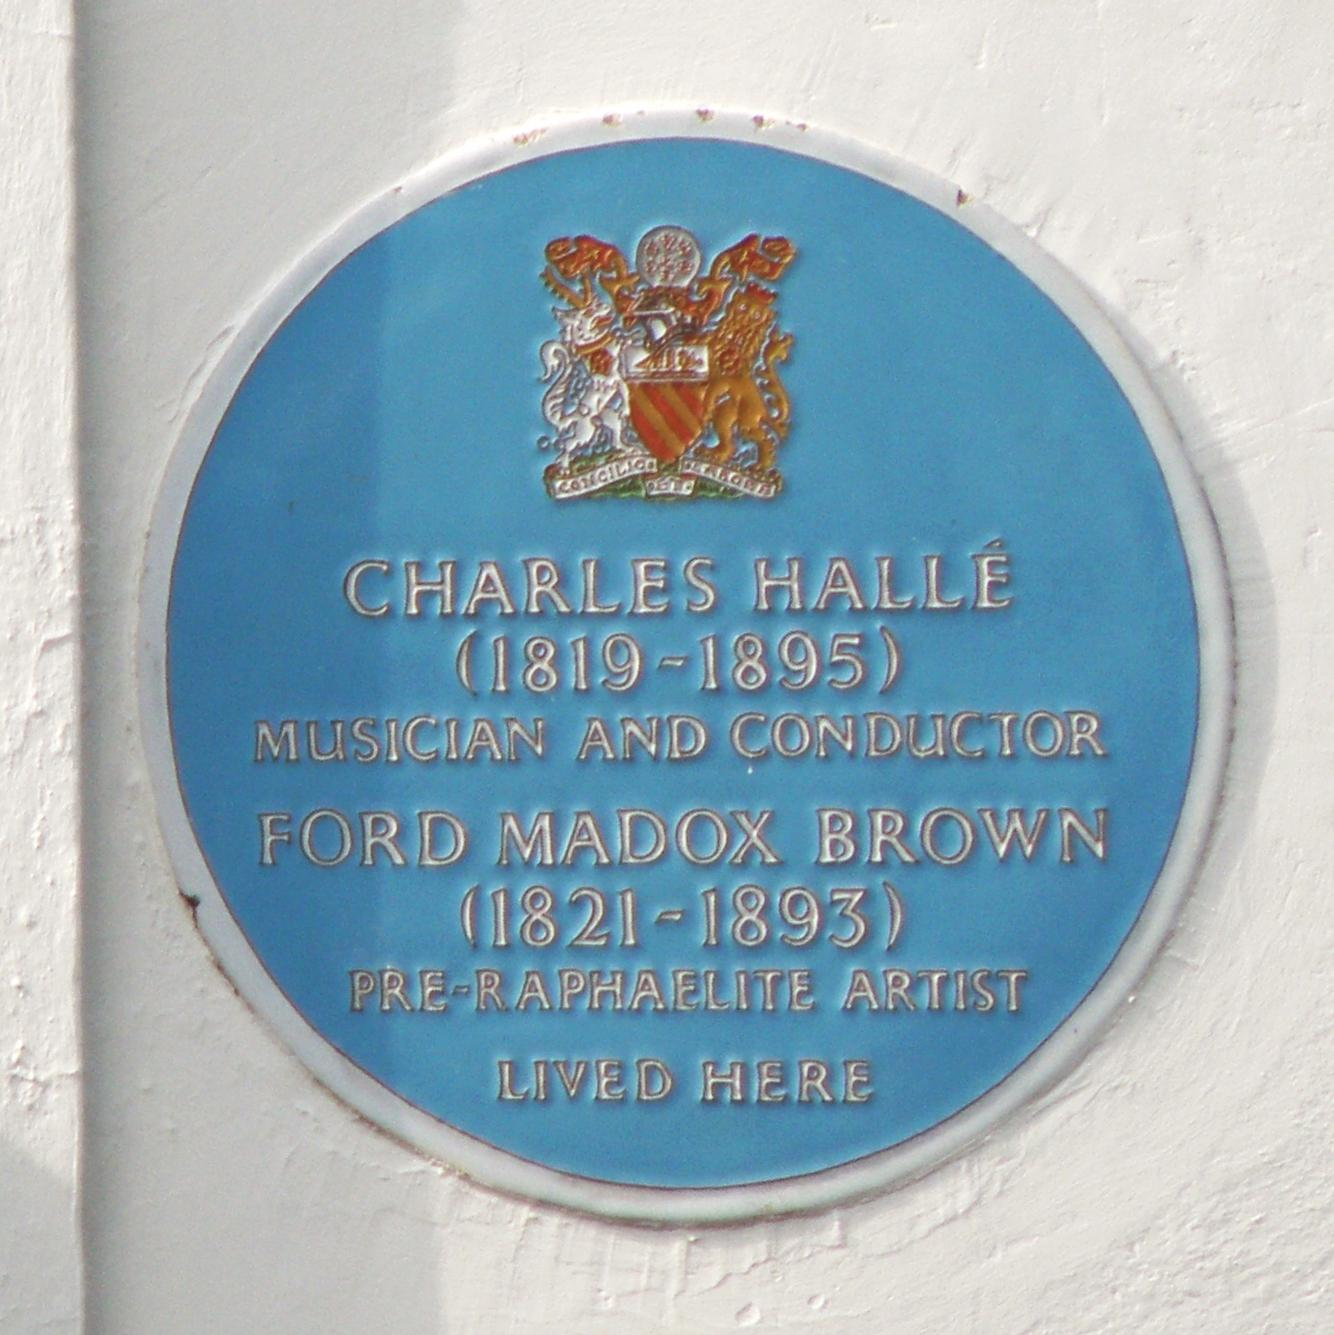 Charless Halle and Ford Madox Brown blue plaque in Manchester